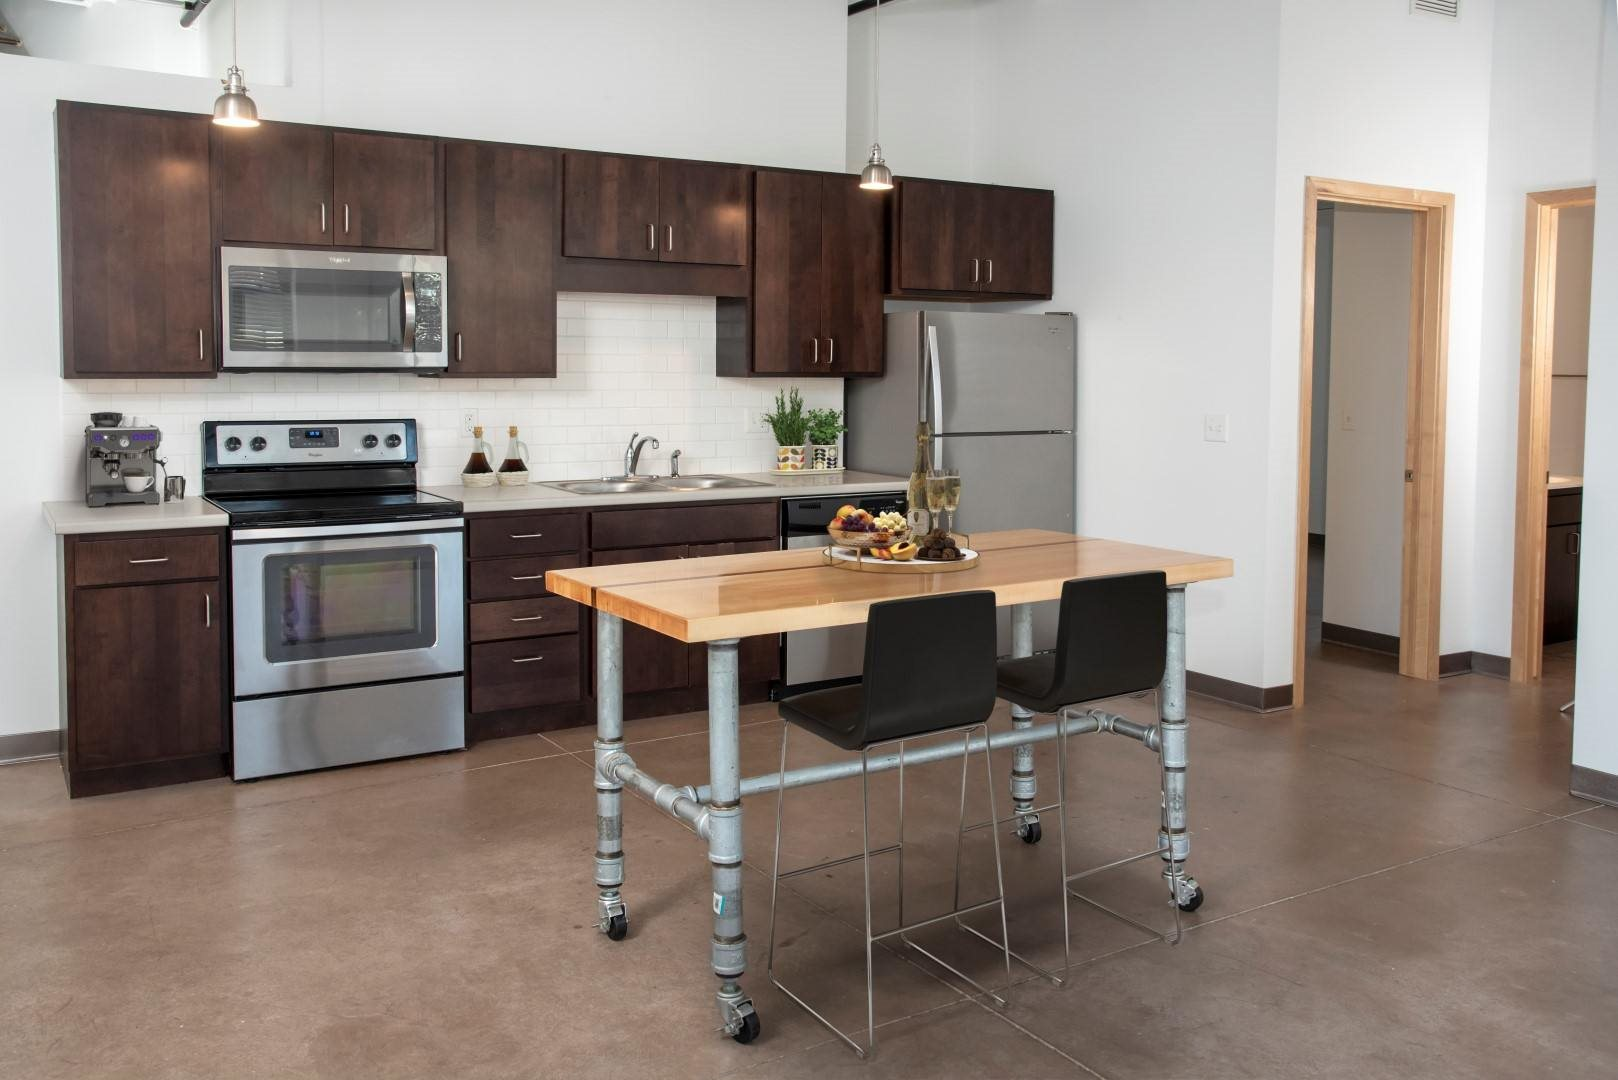 Gurley Lofts two bedroom kitchen